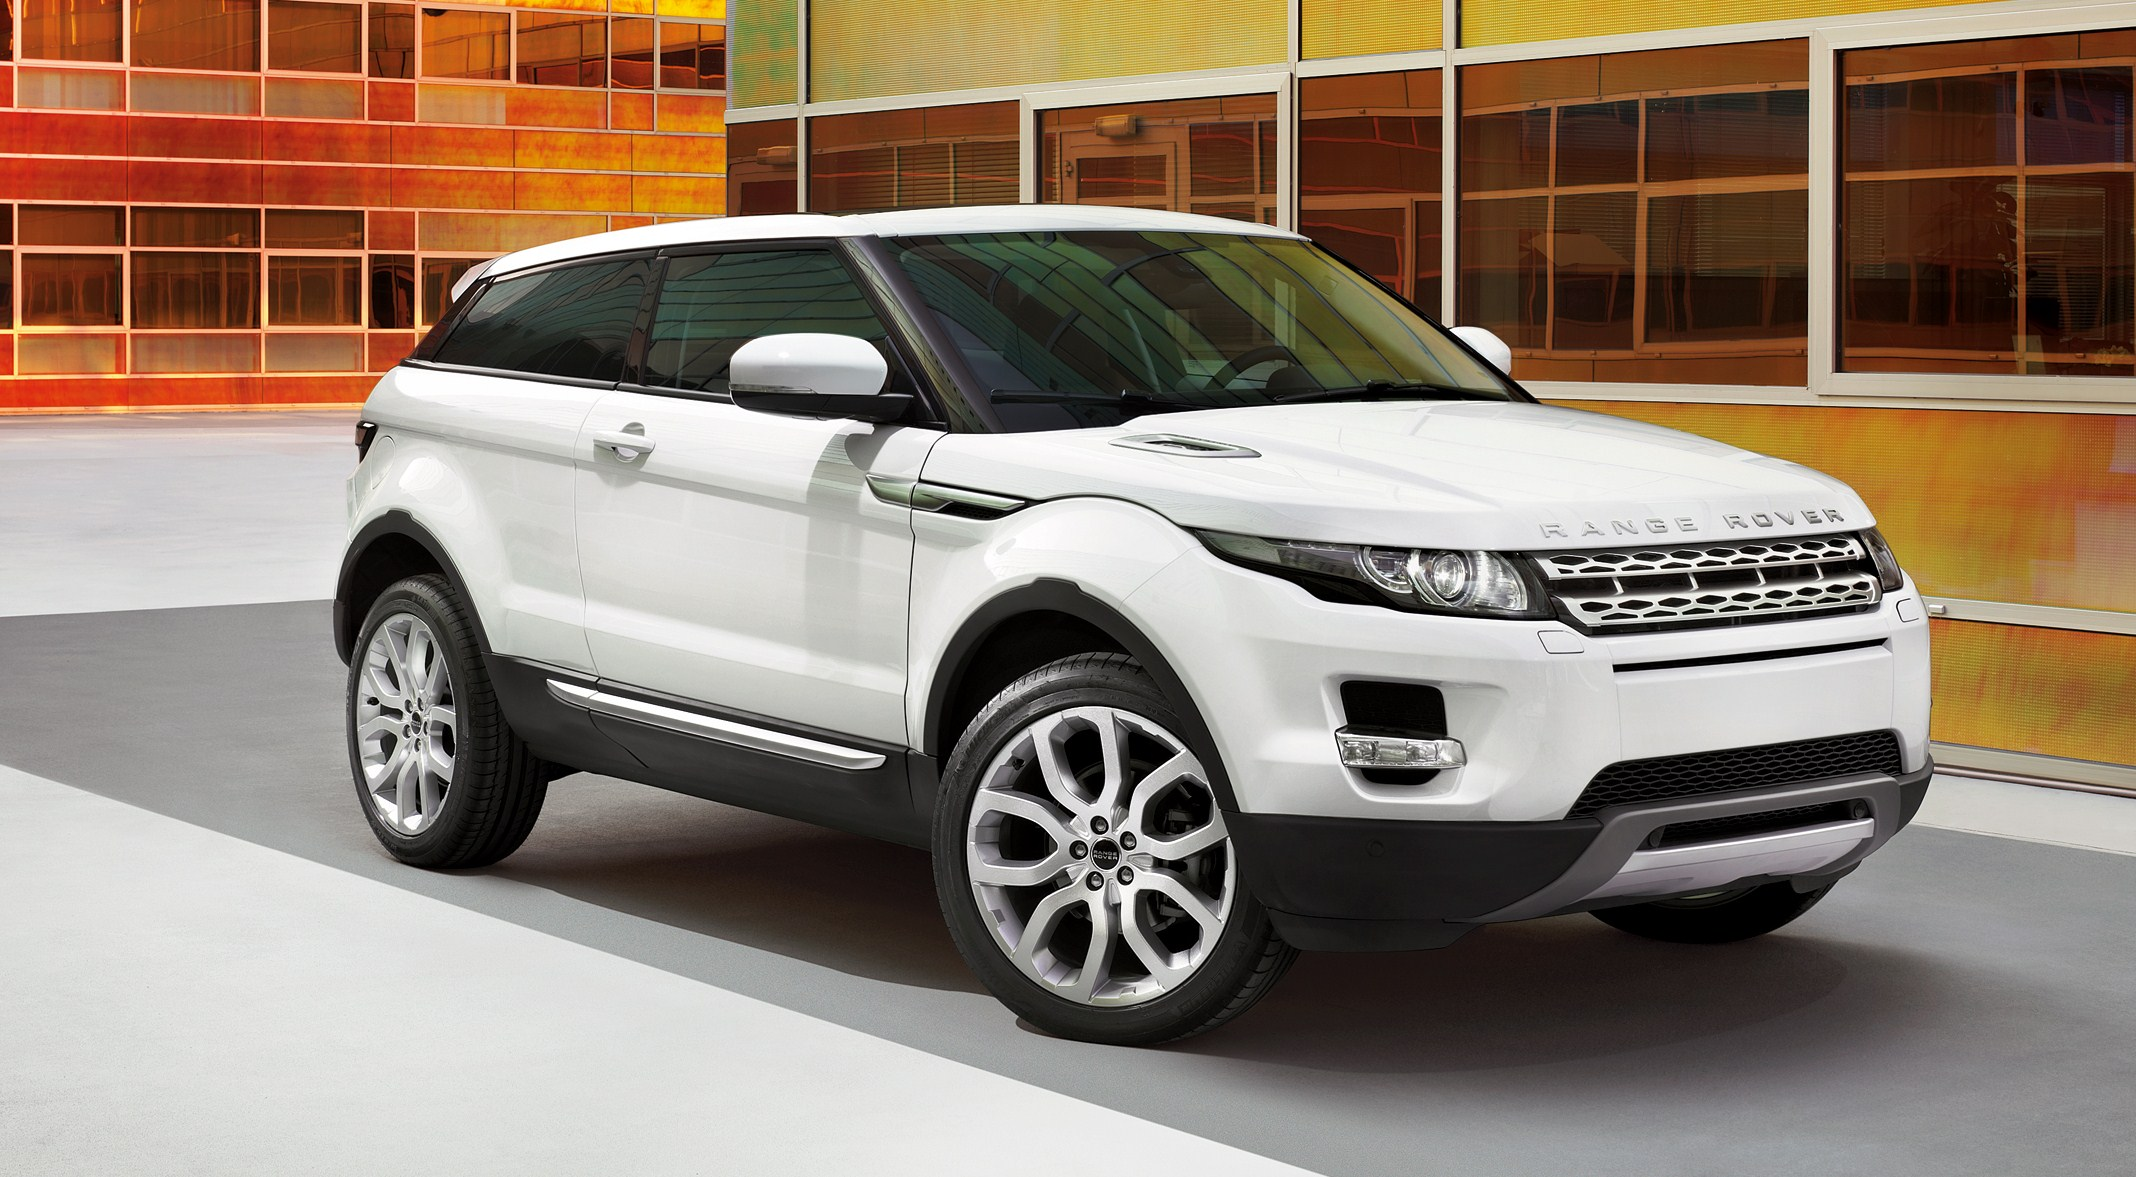 2012 Range Rover Evoque is Women's World Car of the Year 2012 +VIDEO